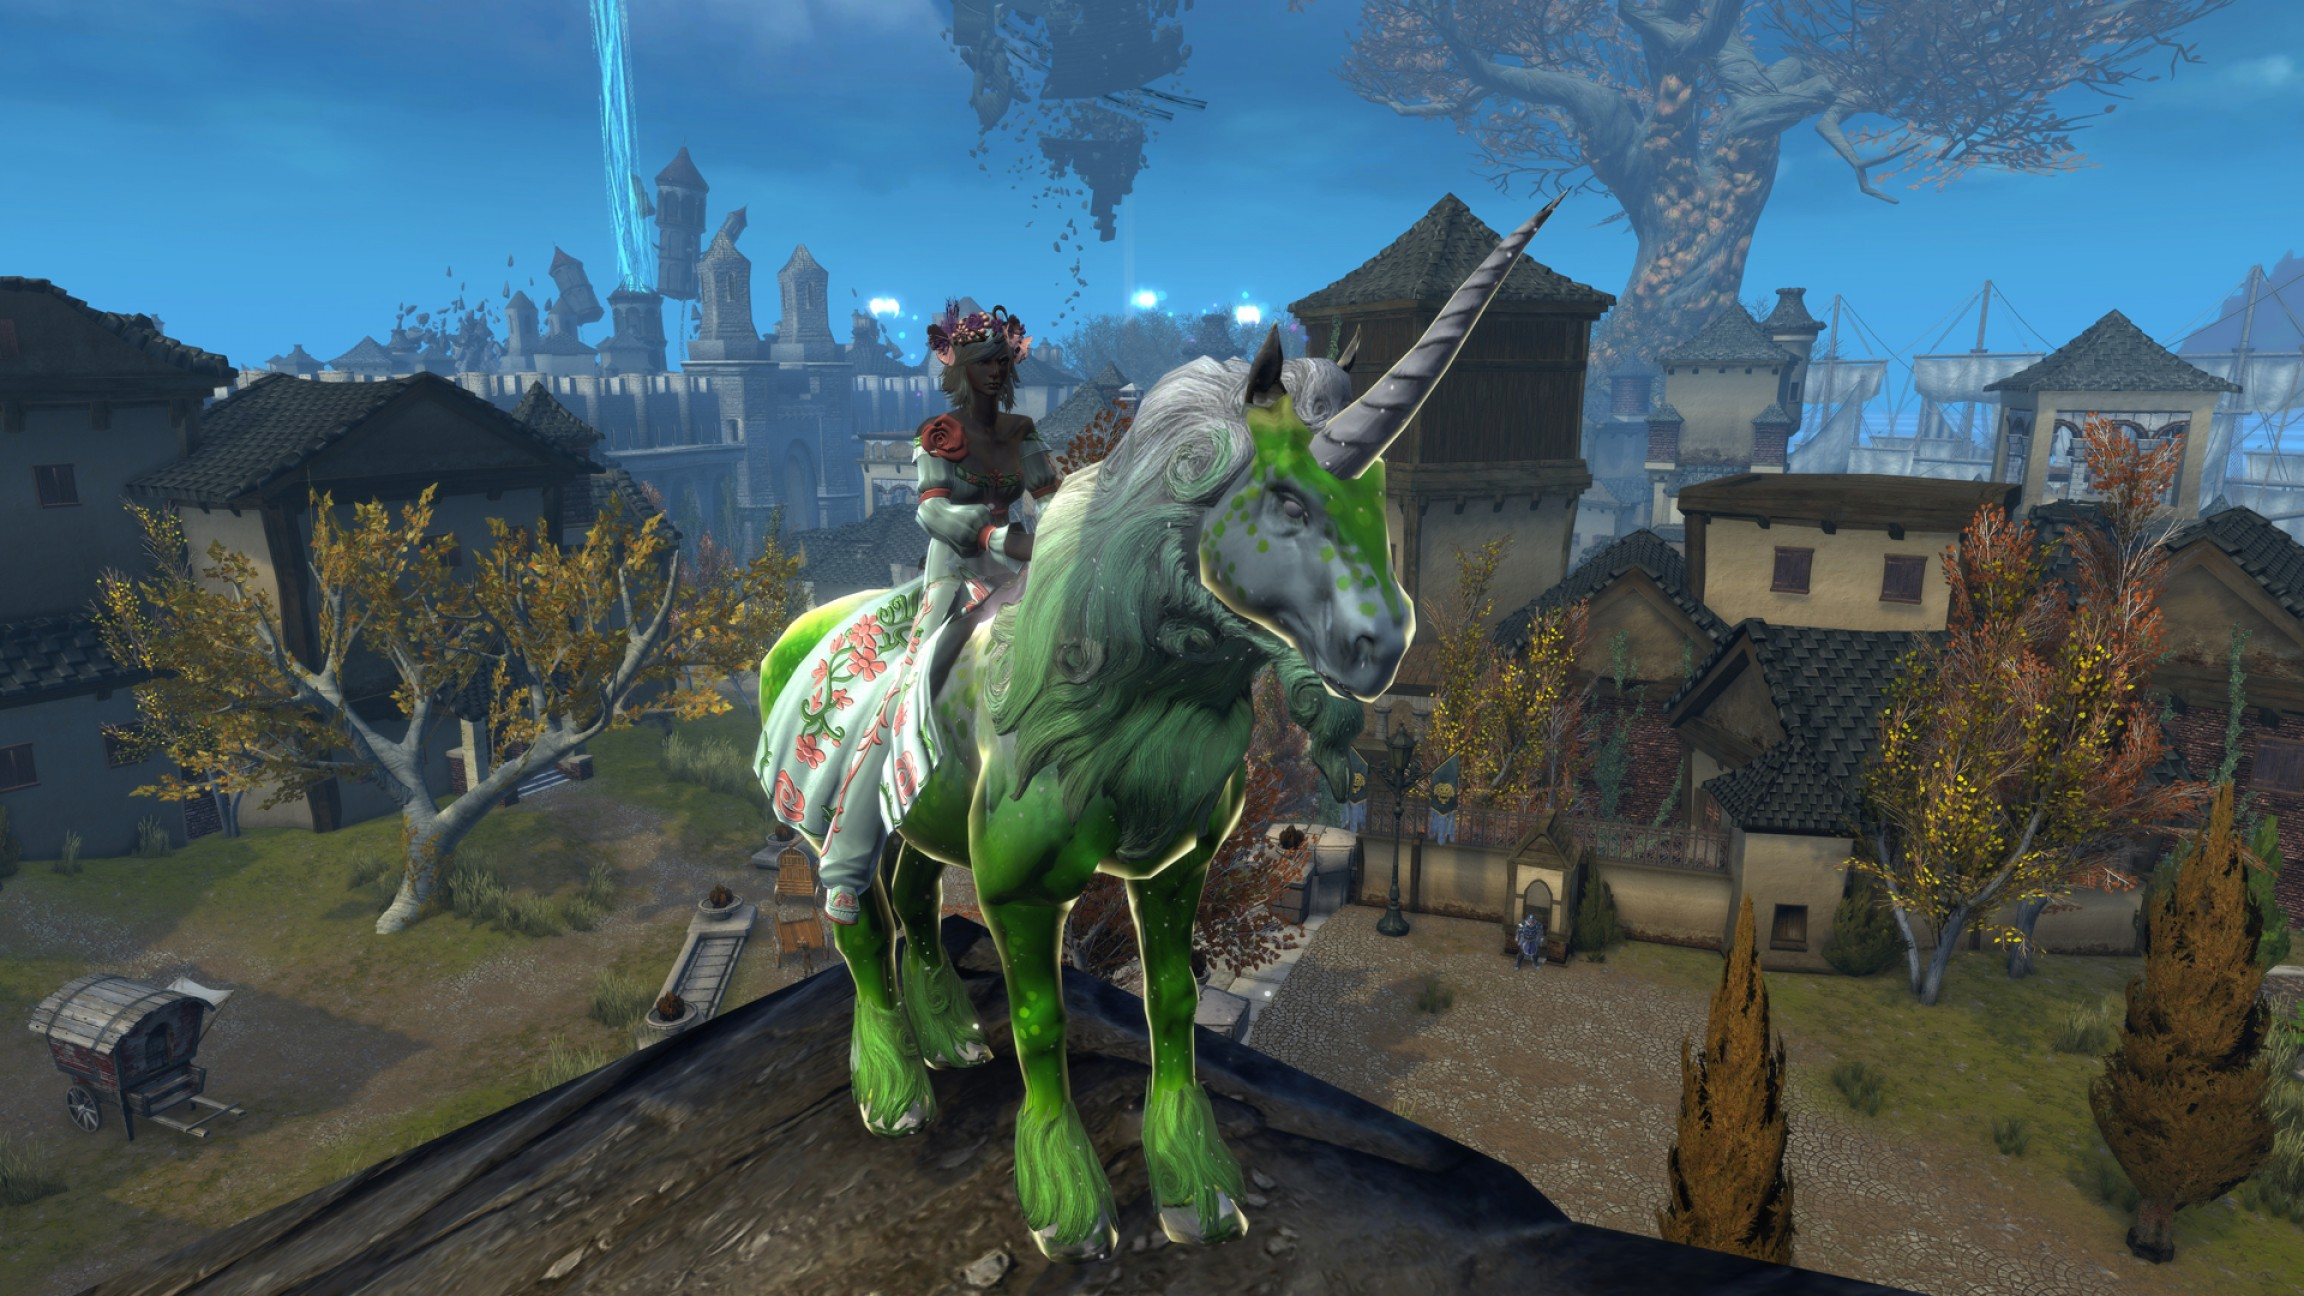 Godfather Black And White Unicorn Vector: Neverwinter The Cloaked Ascendancy Console Launch Unicorn Mount Raffle